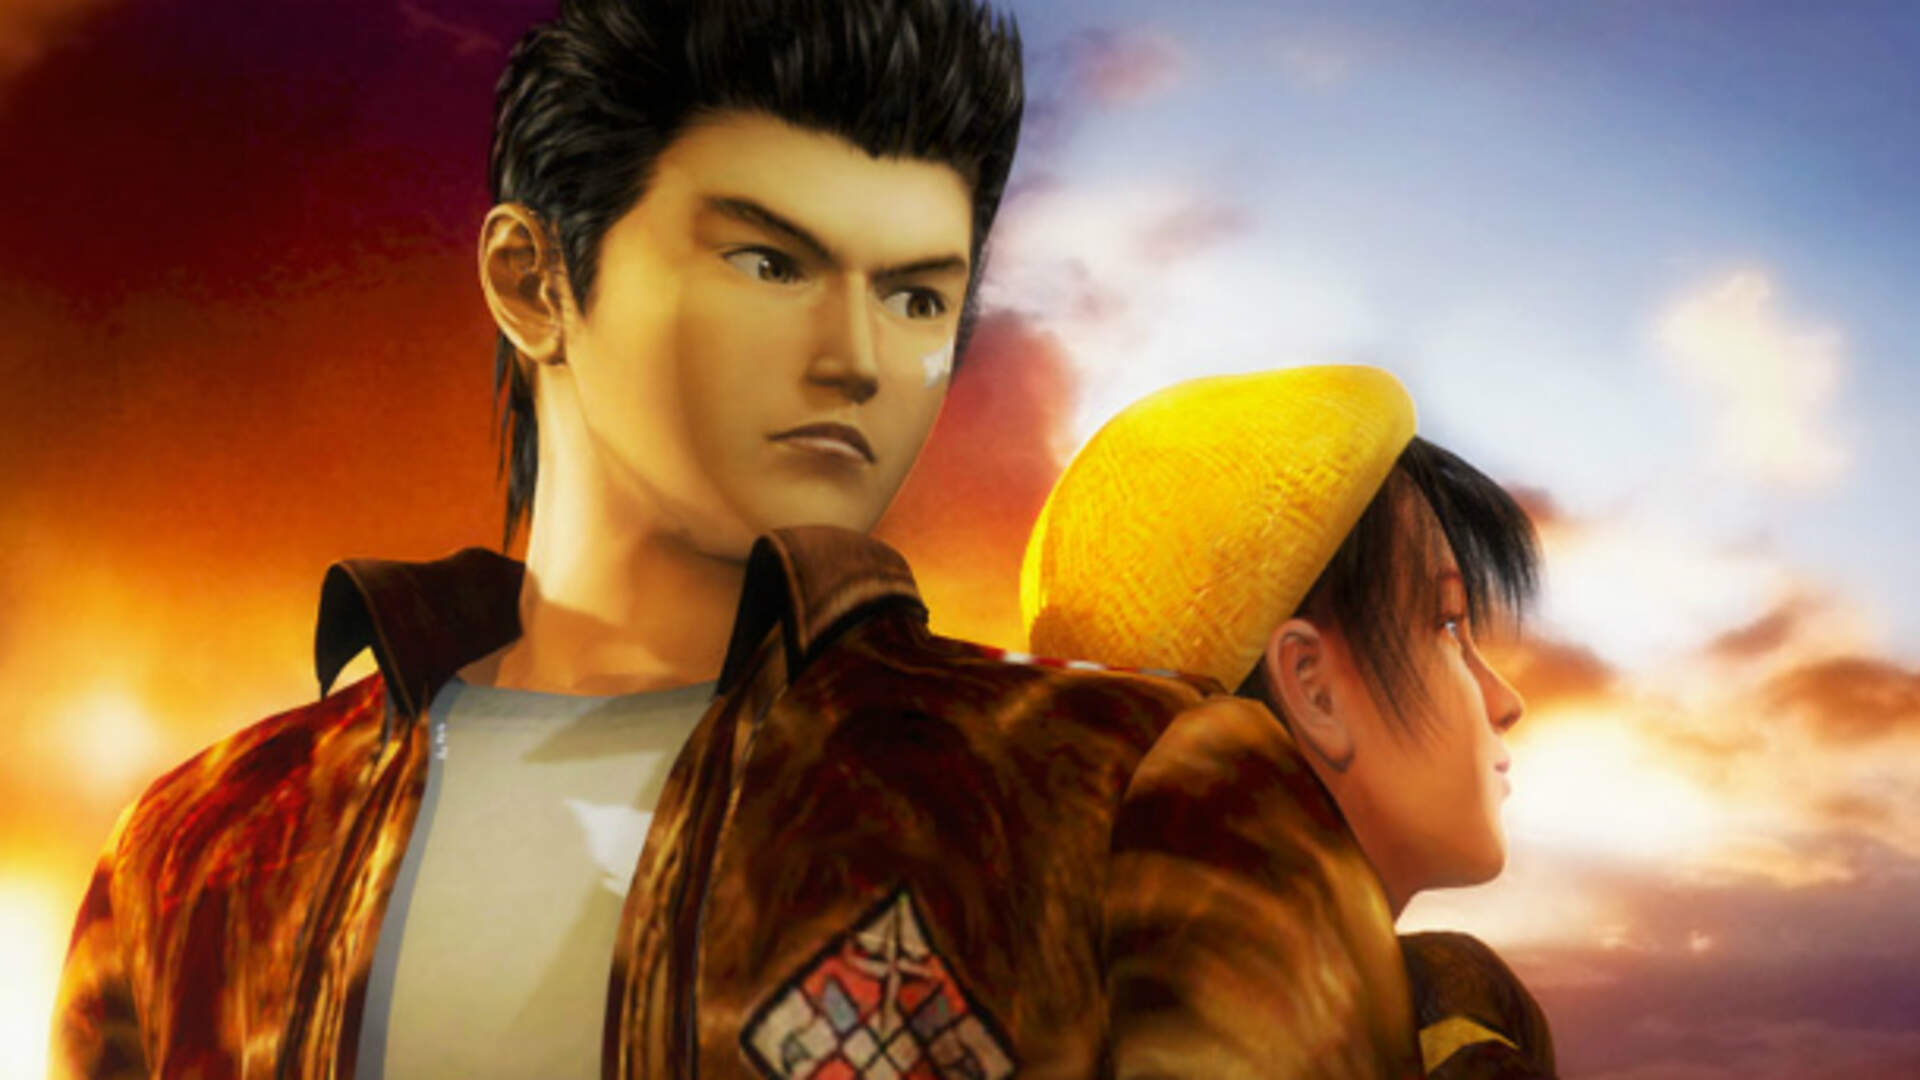 Shenmue 3 Hits $7 Million Stretch Goal, Adding New Depth to the Battle System